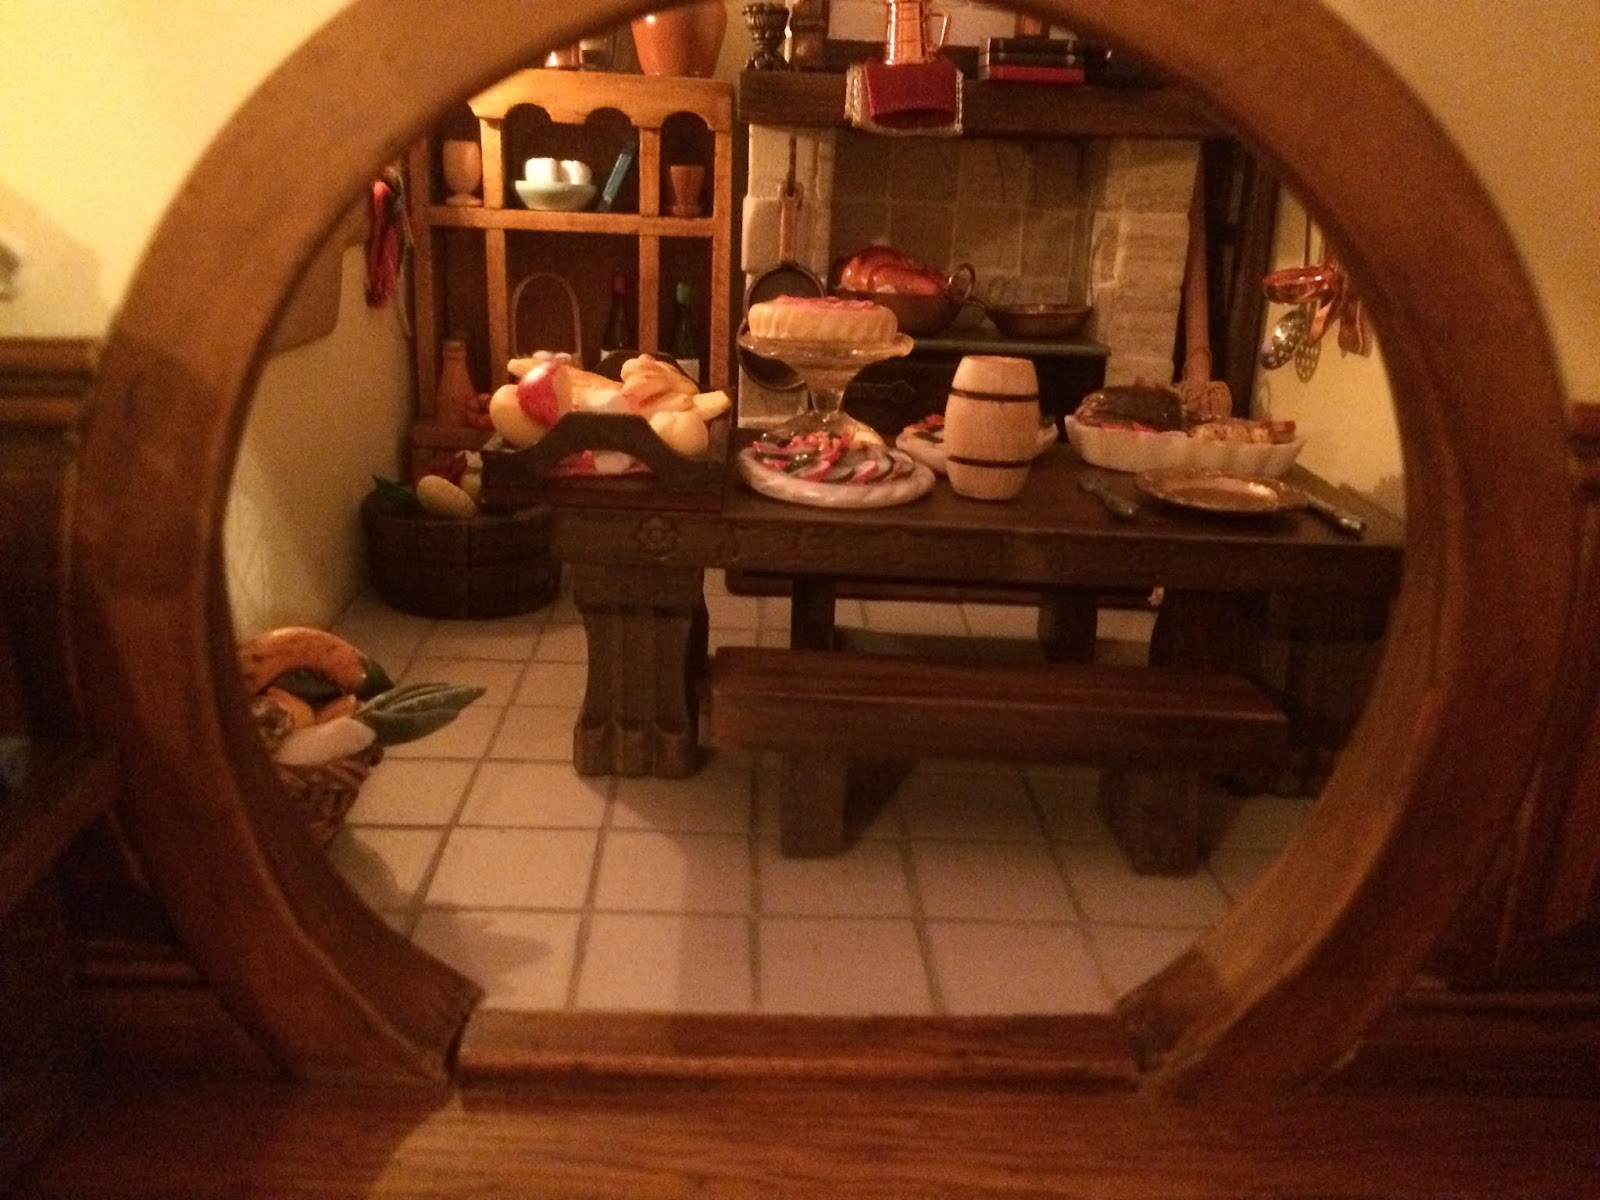 My Hobbit Hole Bag End Kitchen